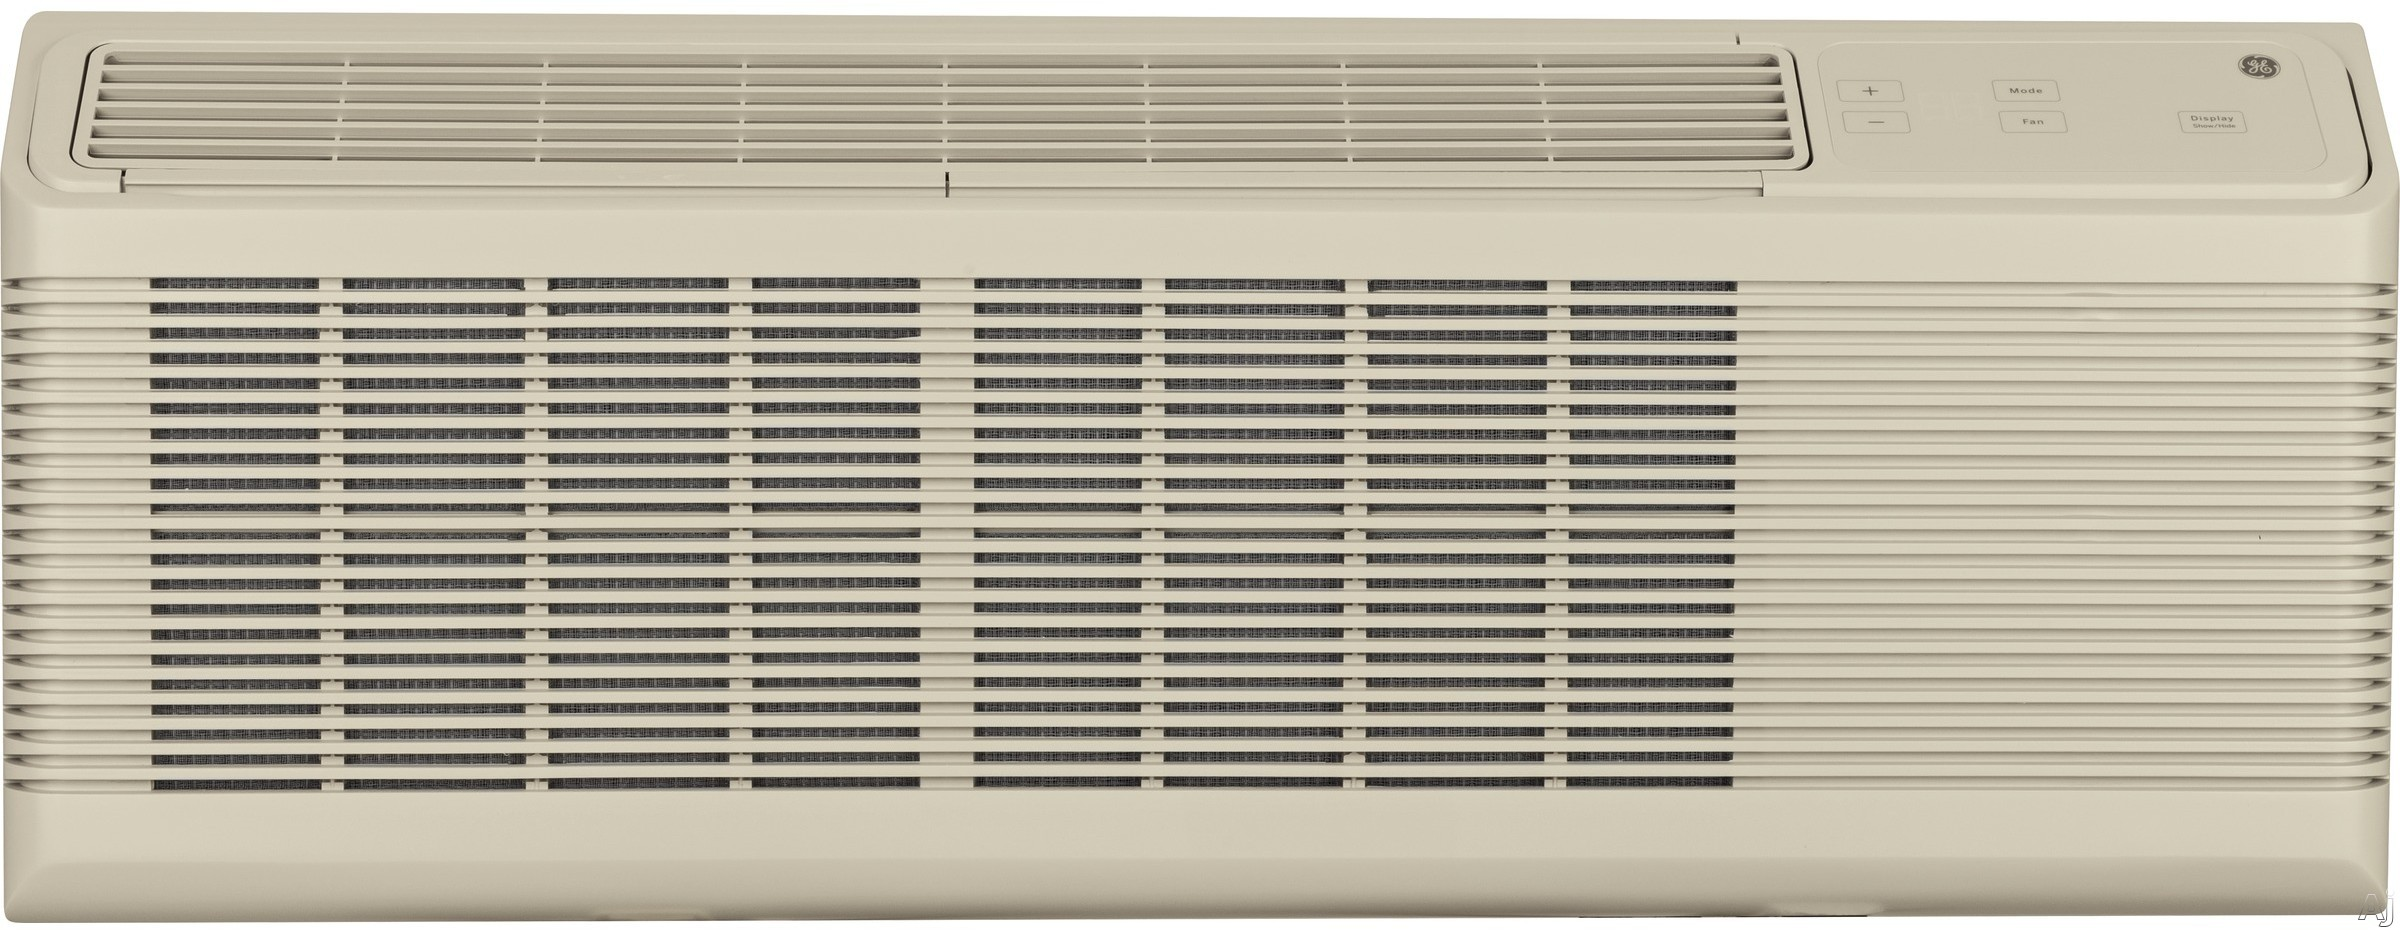 GE Zoneline AZ45E15DAB 14,900 BTU Packaged Terminal Air Conditioner with Electric Heat, 10.5 EER, 4.6 Pints Per Hour Dehumidification, R410A Refrigerant and 230/208 Volt AZ45E15DAB